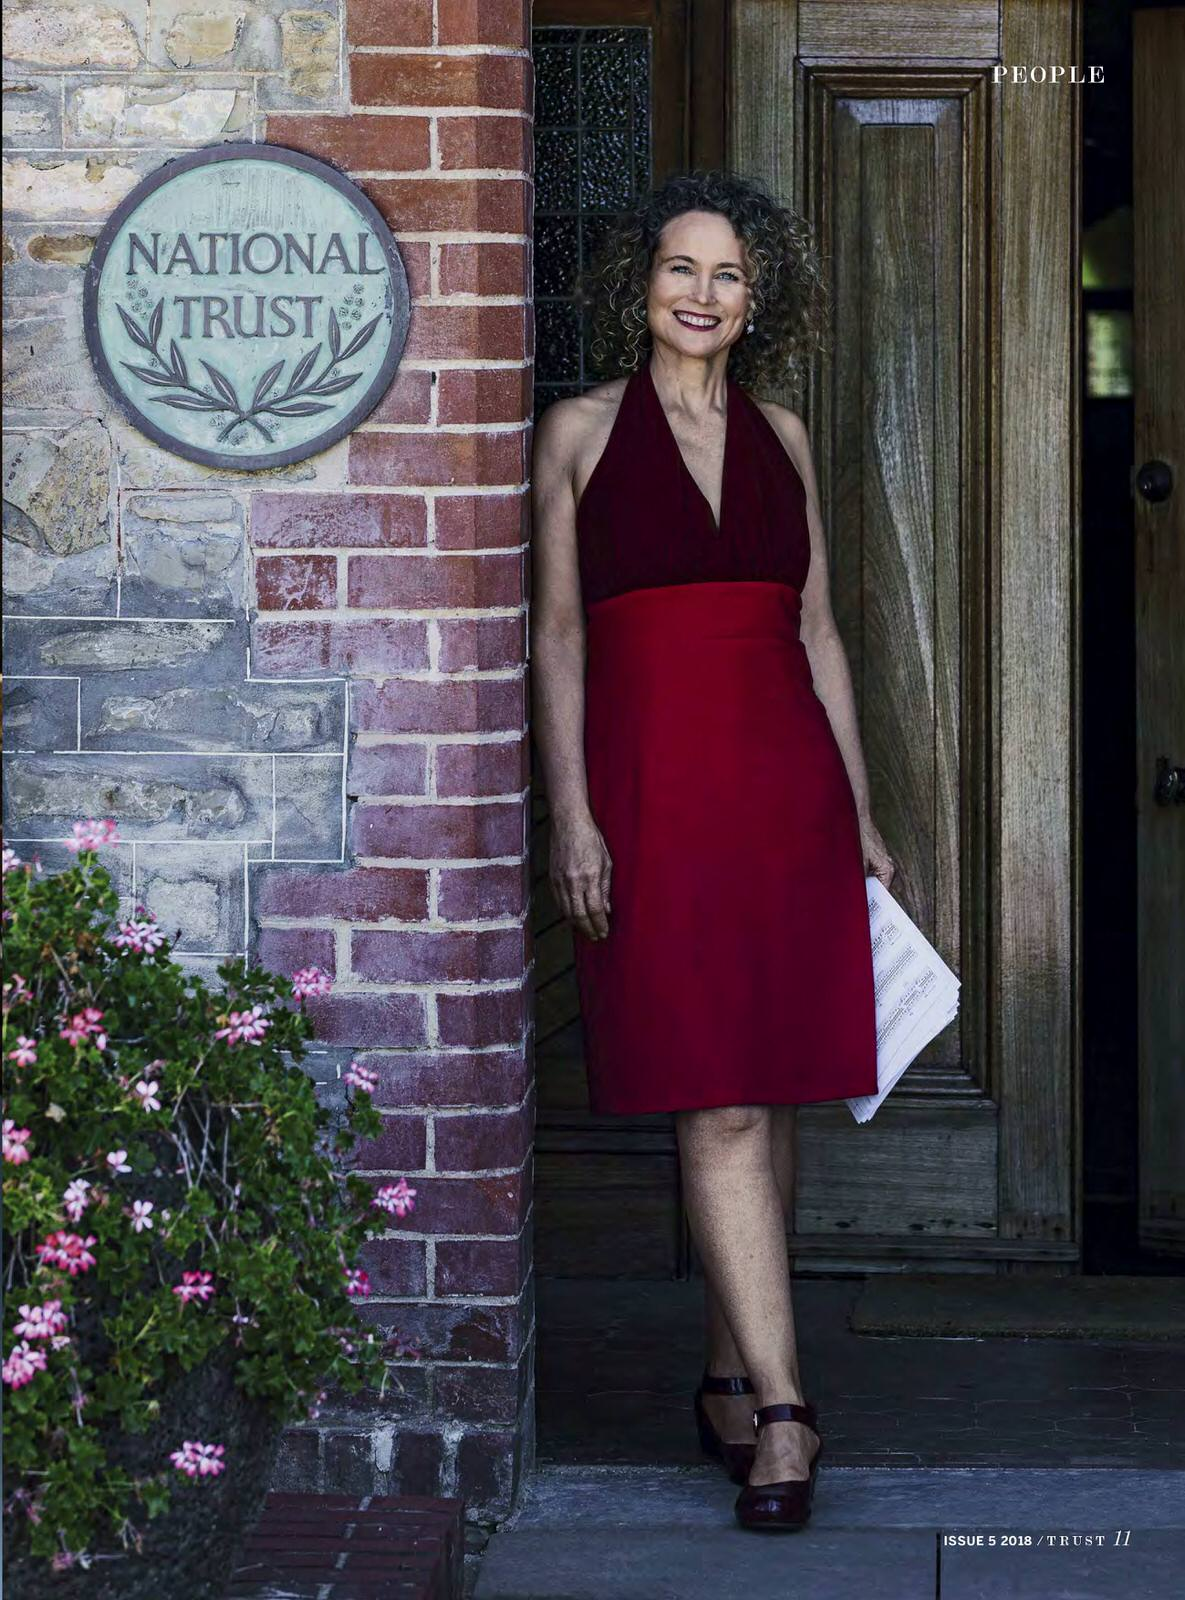 Marnie Hawson, Melbourne lifestyle photographer for The National Trust